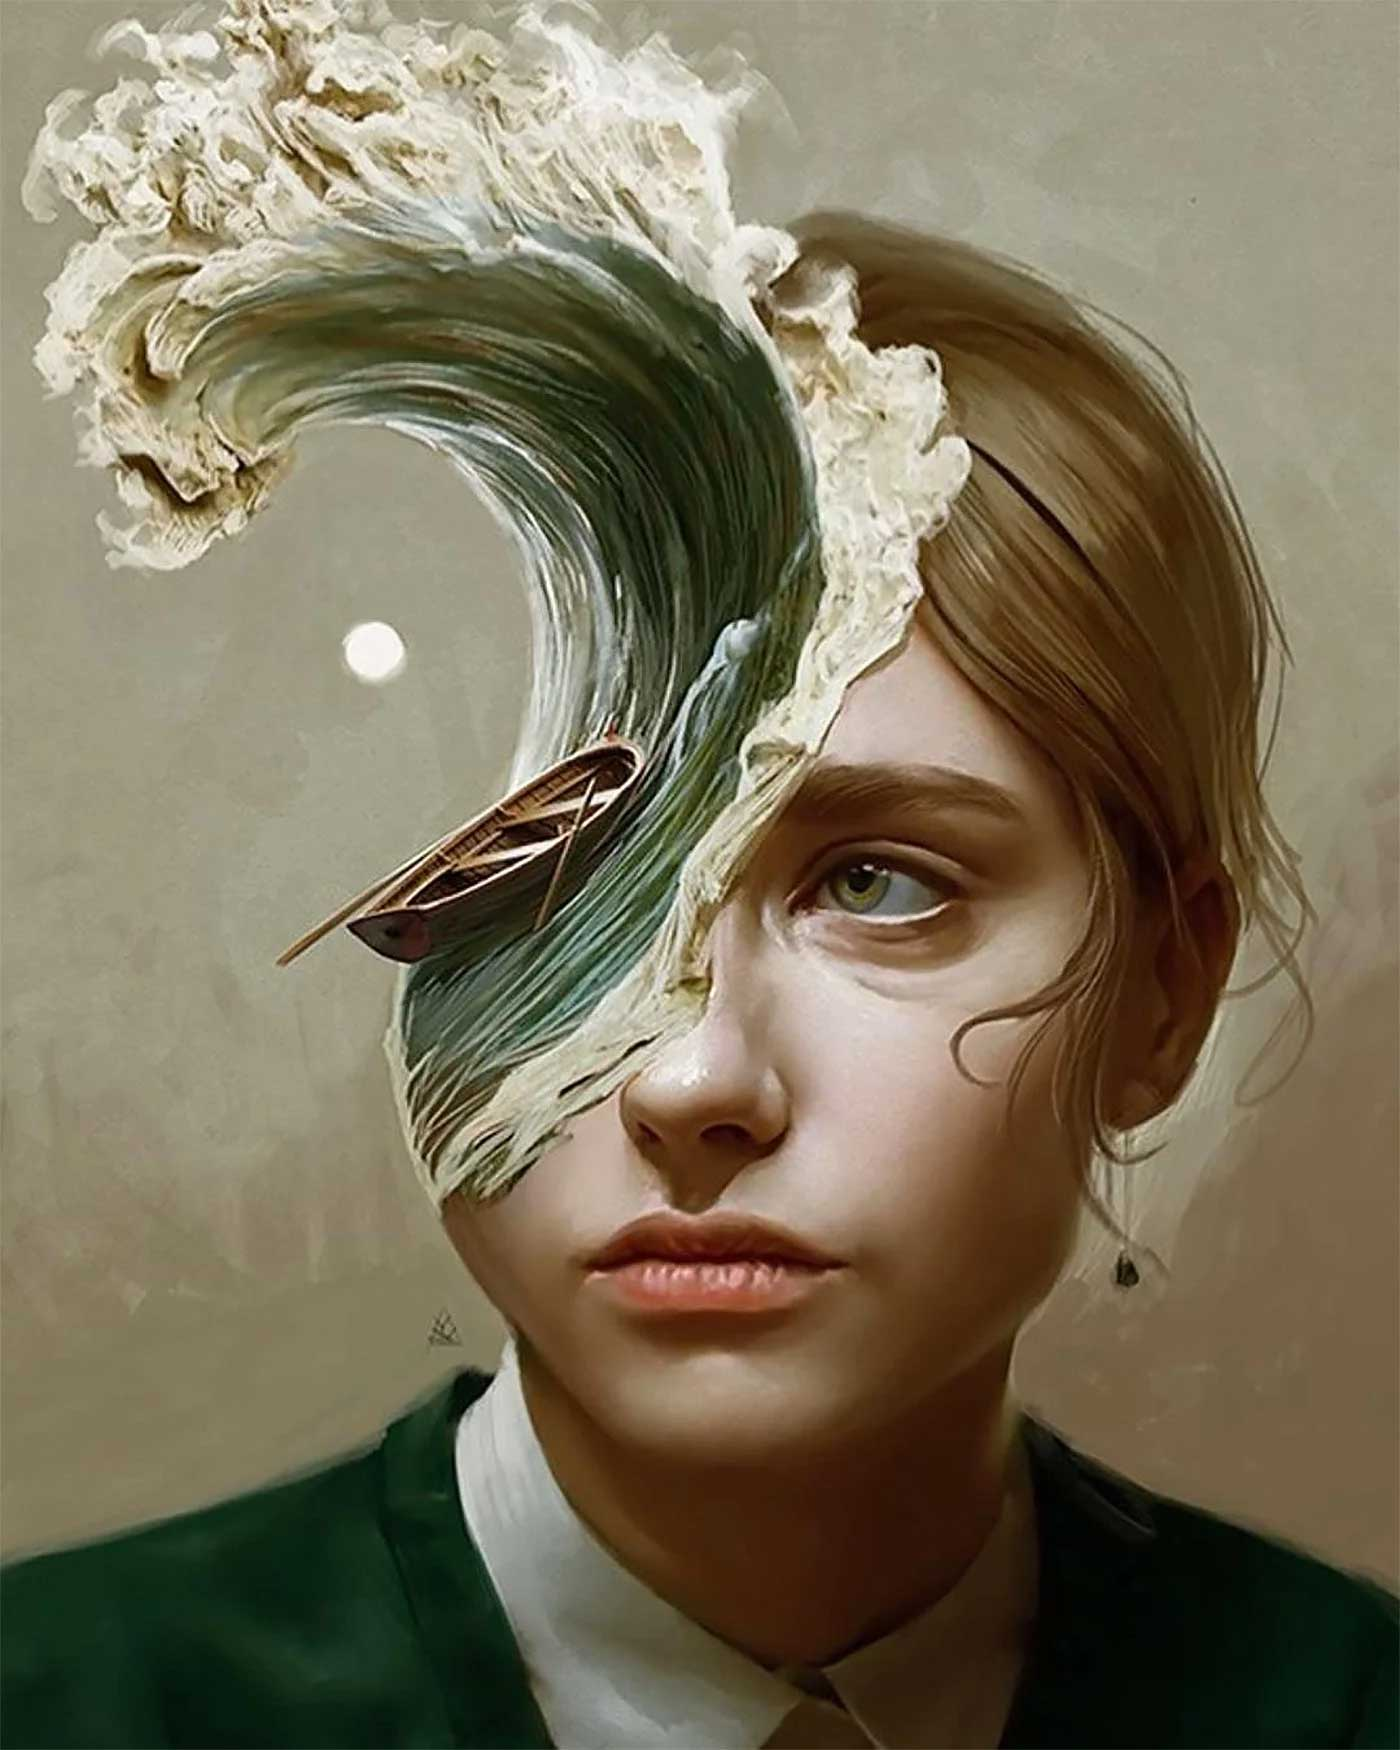 Neue surreale Digital Paintings von Aykut Aydogdu Aykut-Aydogdu-surreale-digital-paintings_2020_04